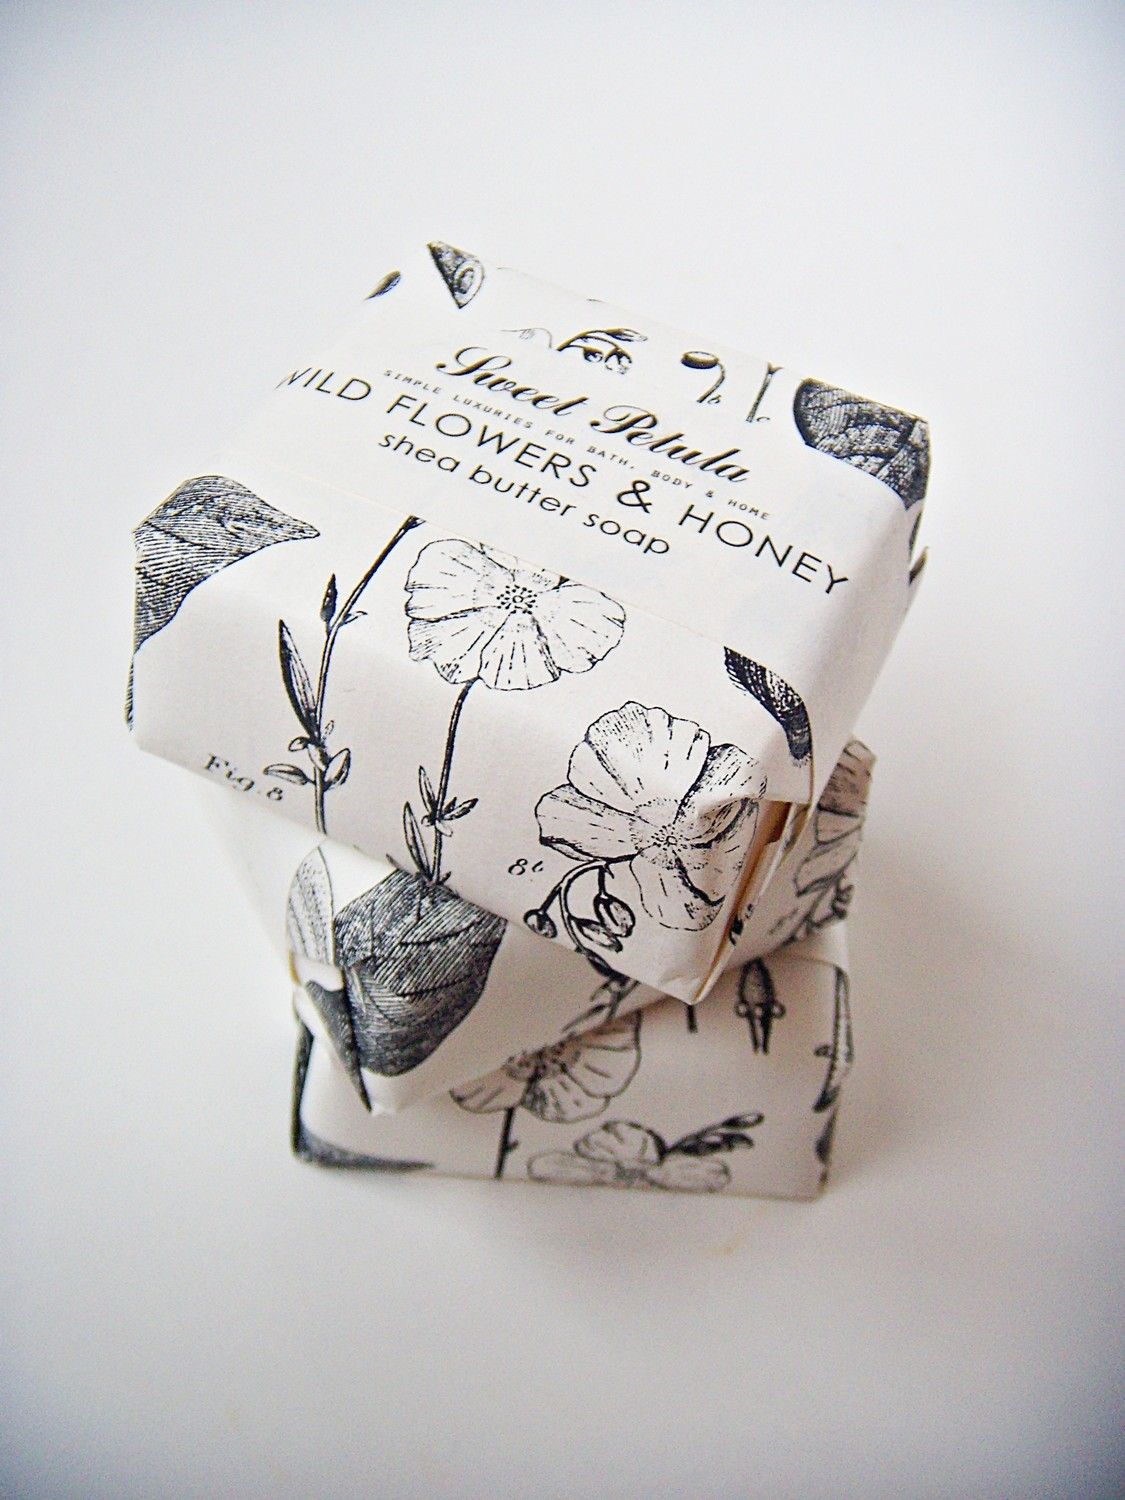 LOVE this soap company. Pack some for the honeymoon! You want to smell the way you want to smell. utterly divine ;)